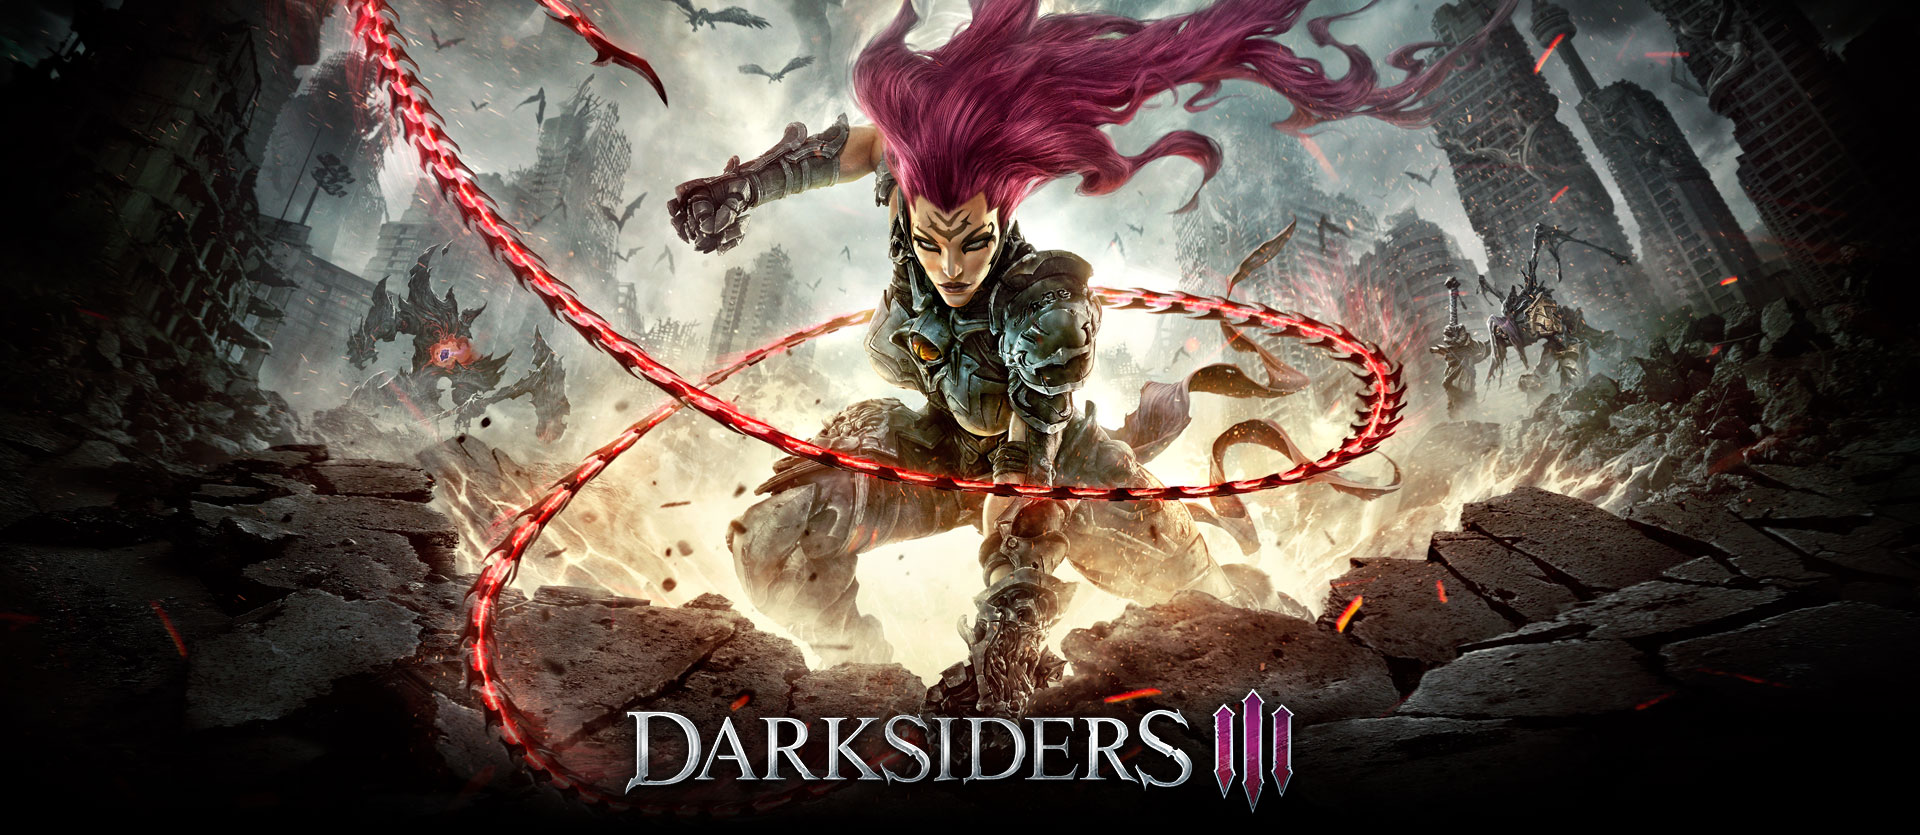 Darksiders III, fury unleashing her whip in a demolished city scape